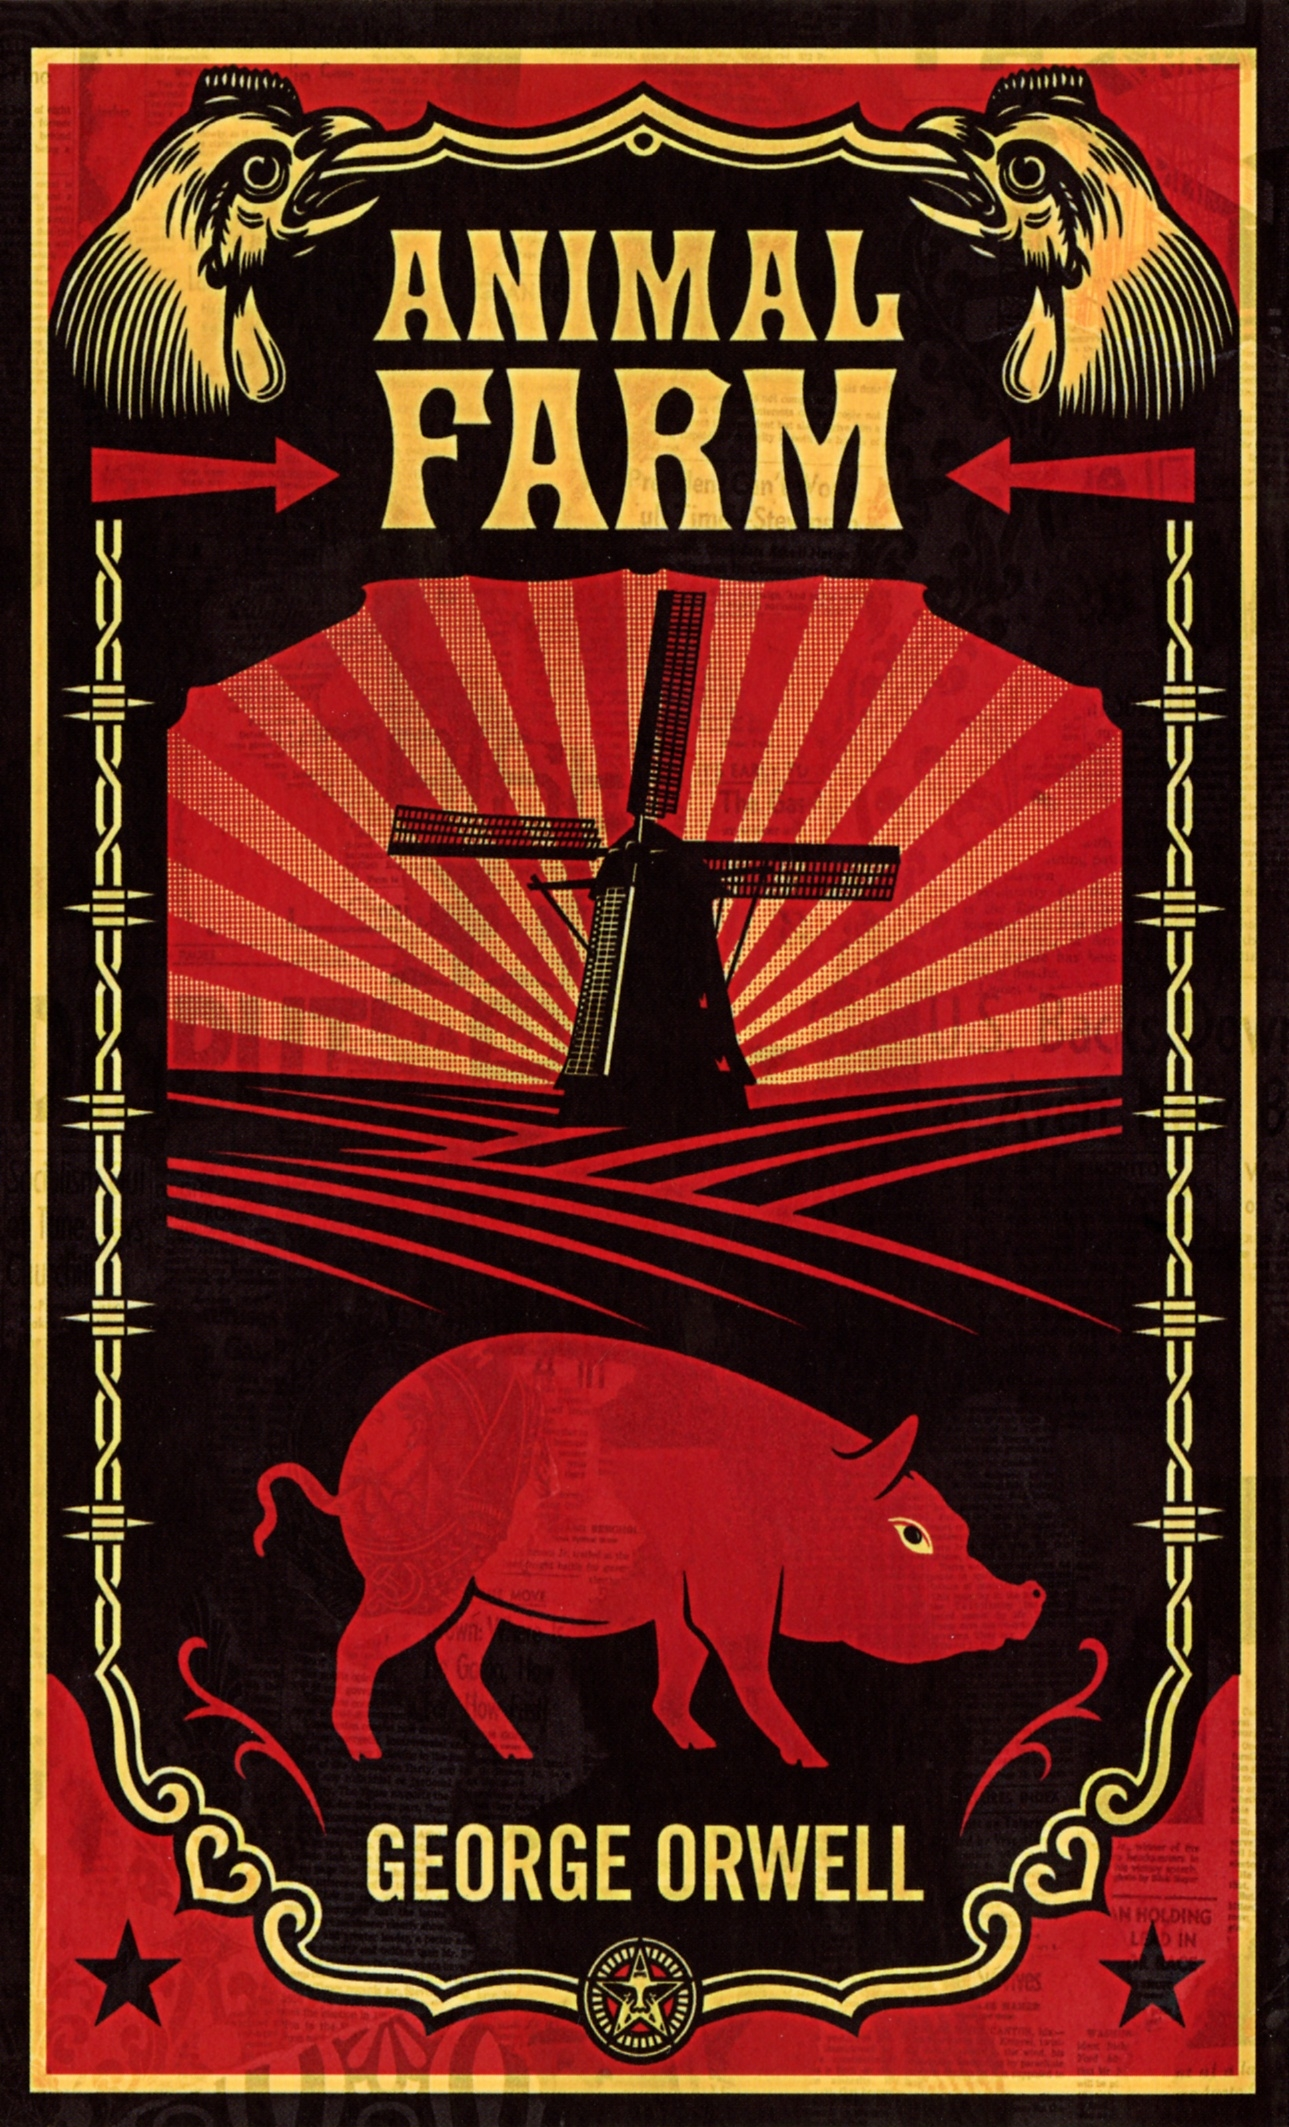 a good read from george orwells animal farm Get free homework help on george orwell's animal farm: book summary, chapter summary and analysis, quotes, essays, and character analysis courtesy of cliffsnotes animal farm is george orwell's satire on equality, where all barnyard animals live free from their human masters' tyranny.